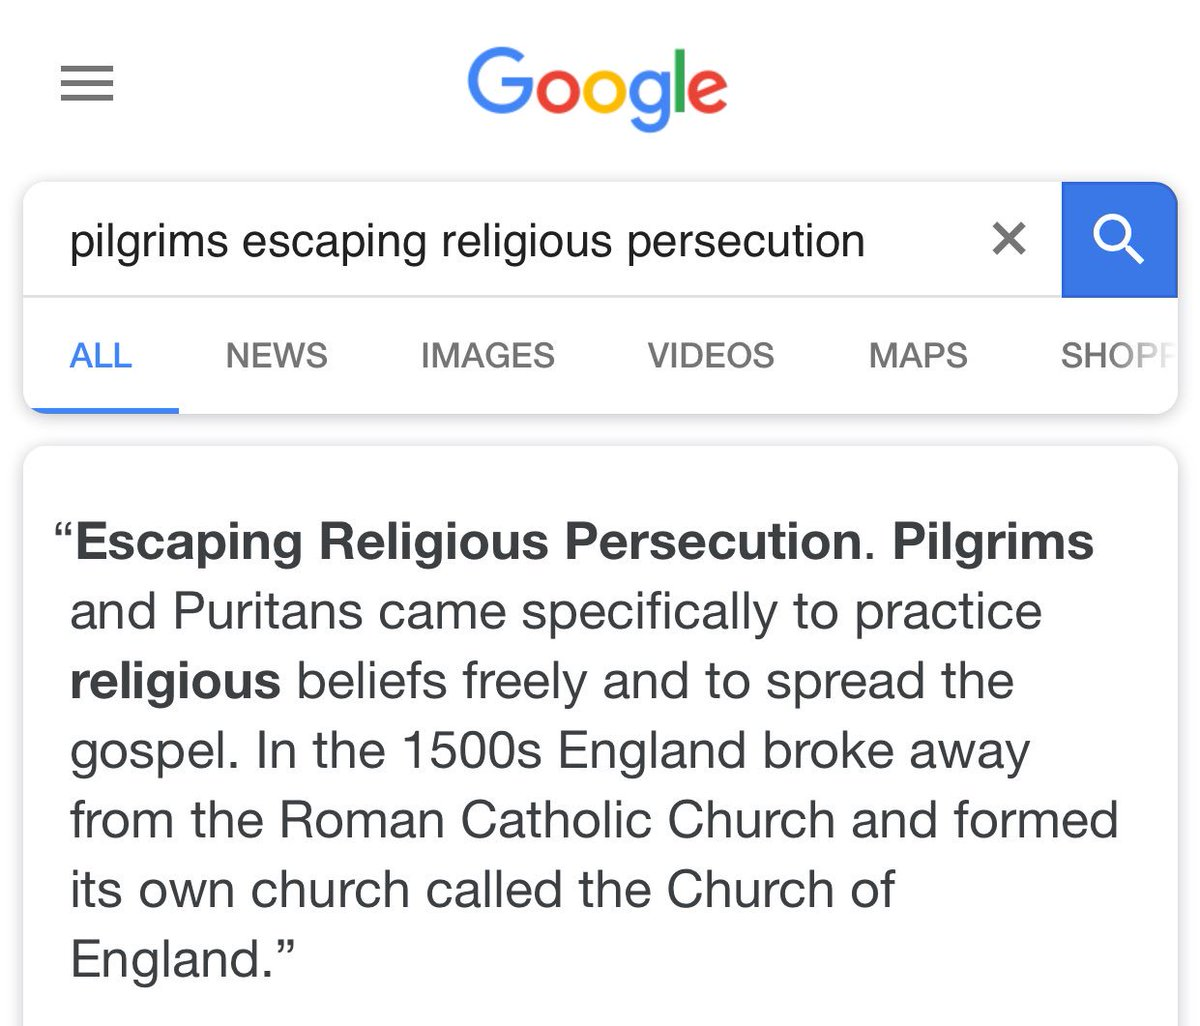 @VikingsUniteNow Wow you're dense — simple google search. Willful ignorance is the disease for sure https://t.co/l9YAWJQfOj